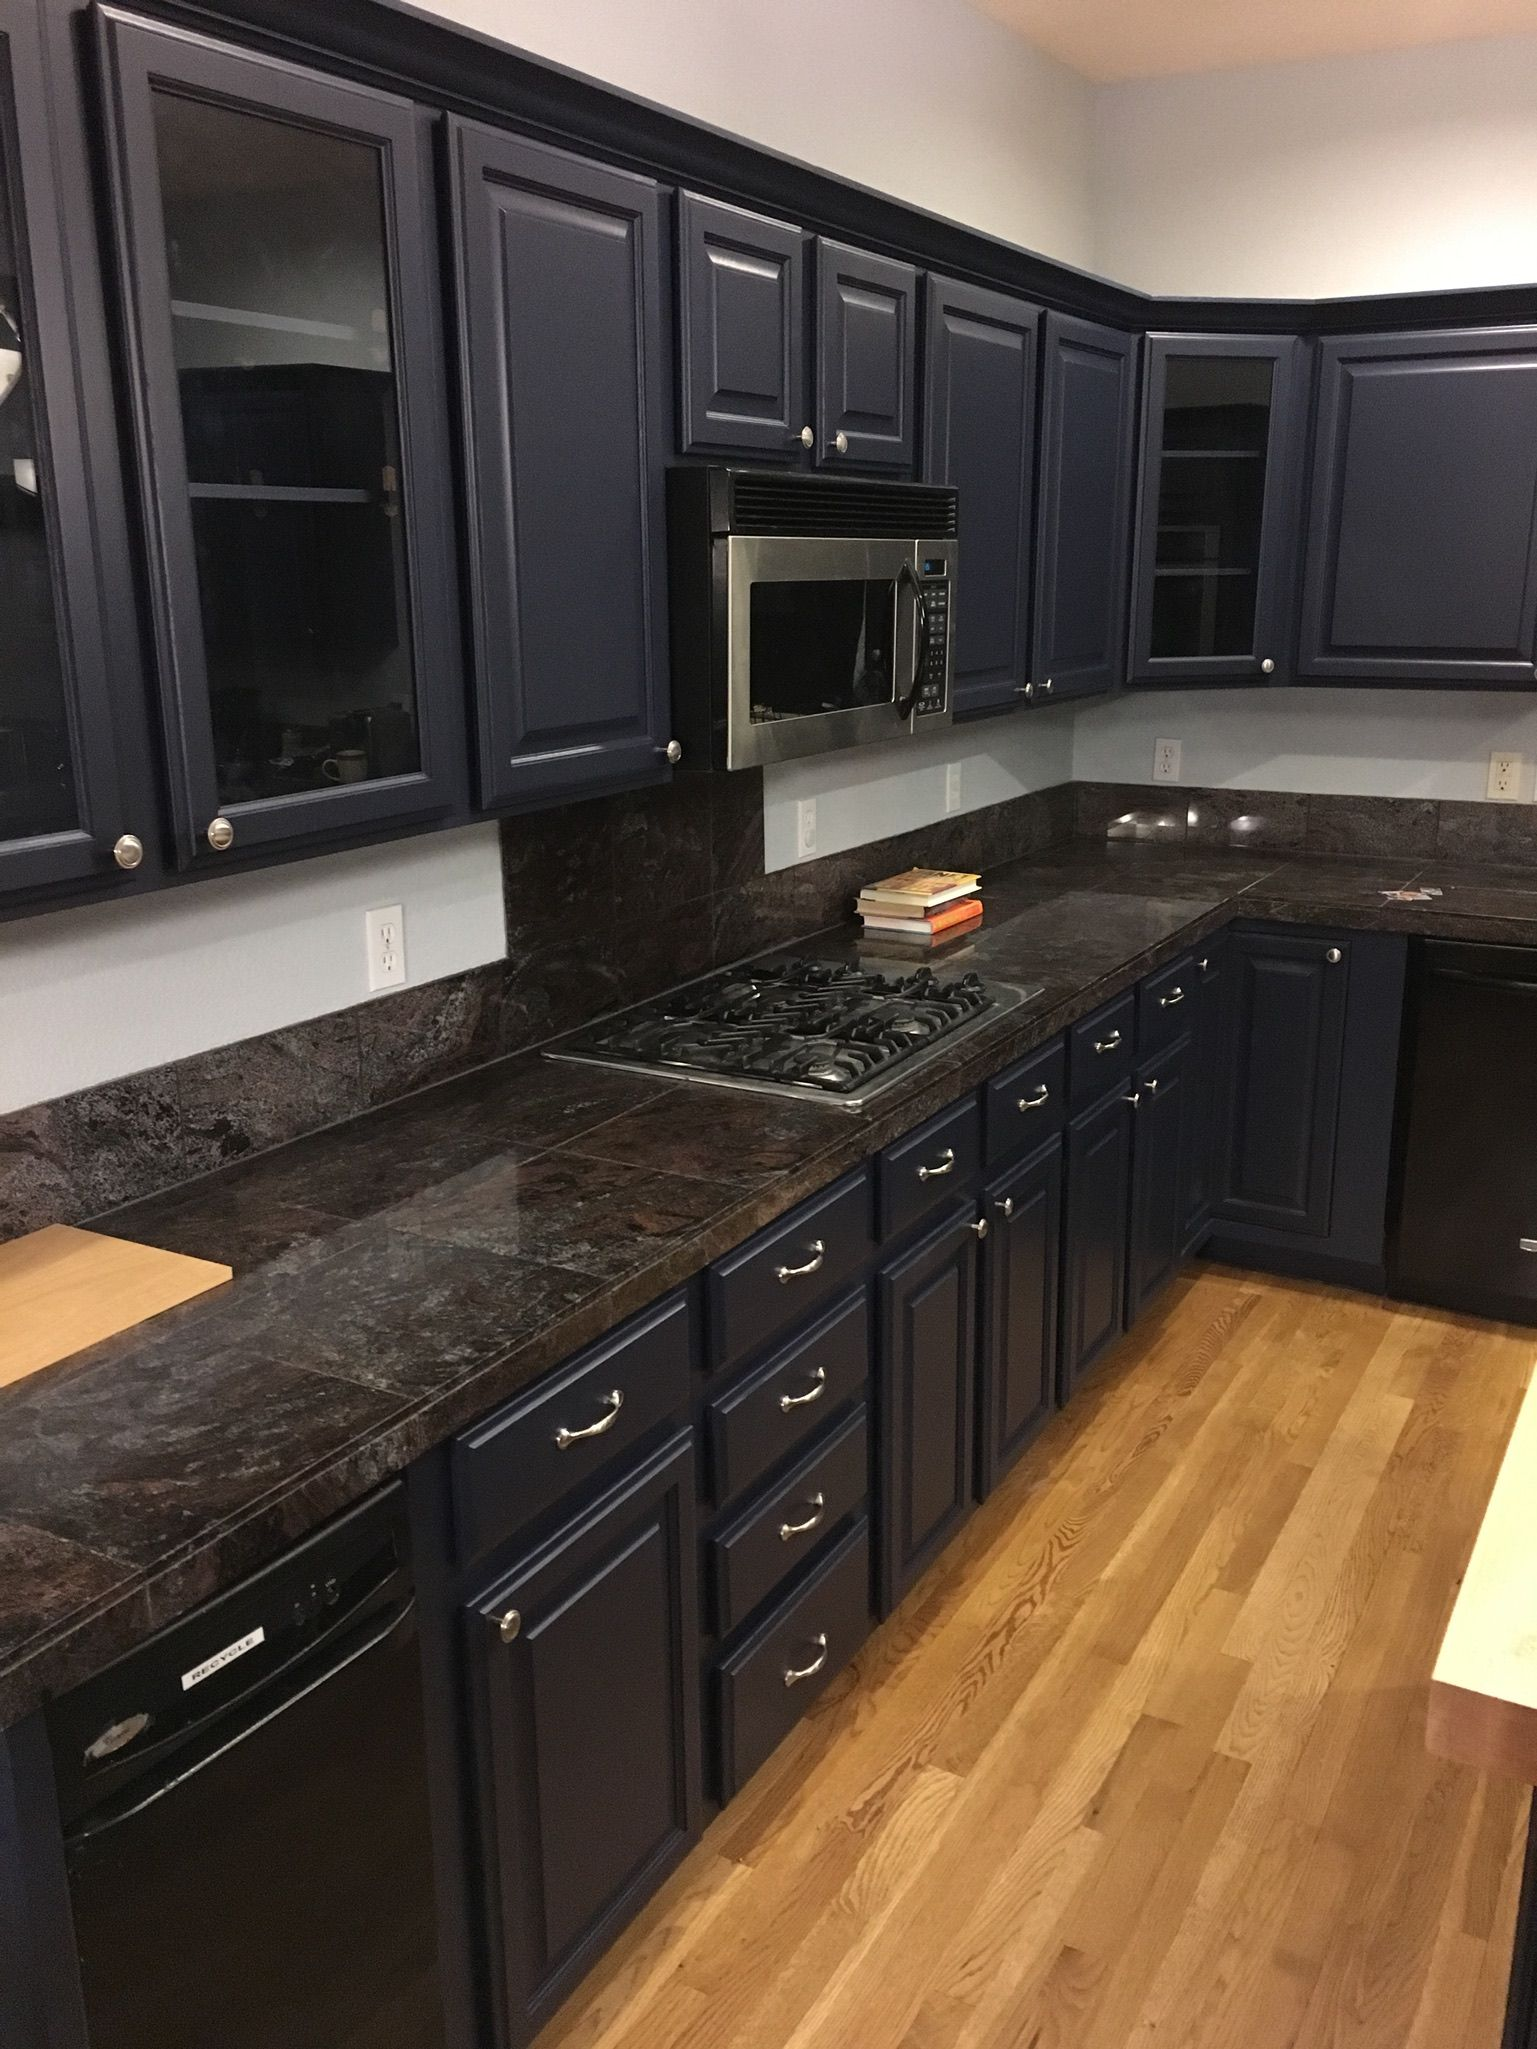 Dark Navy Resurfaced Cabinets Making A Statement In This Kitchen